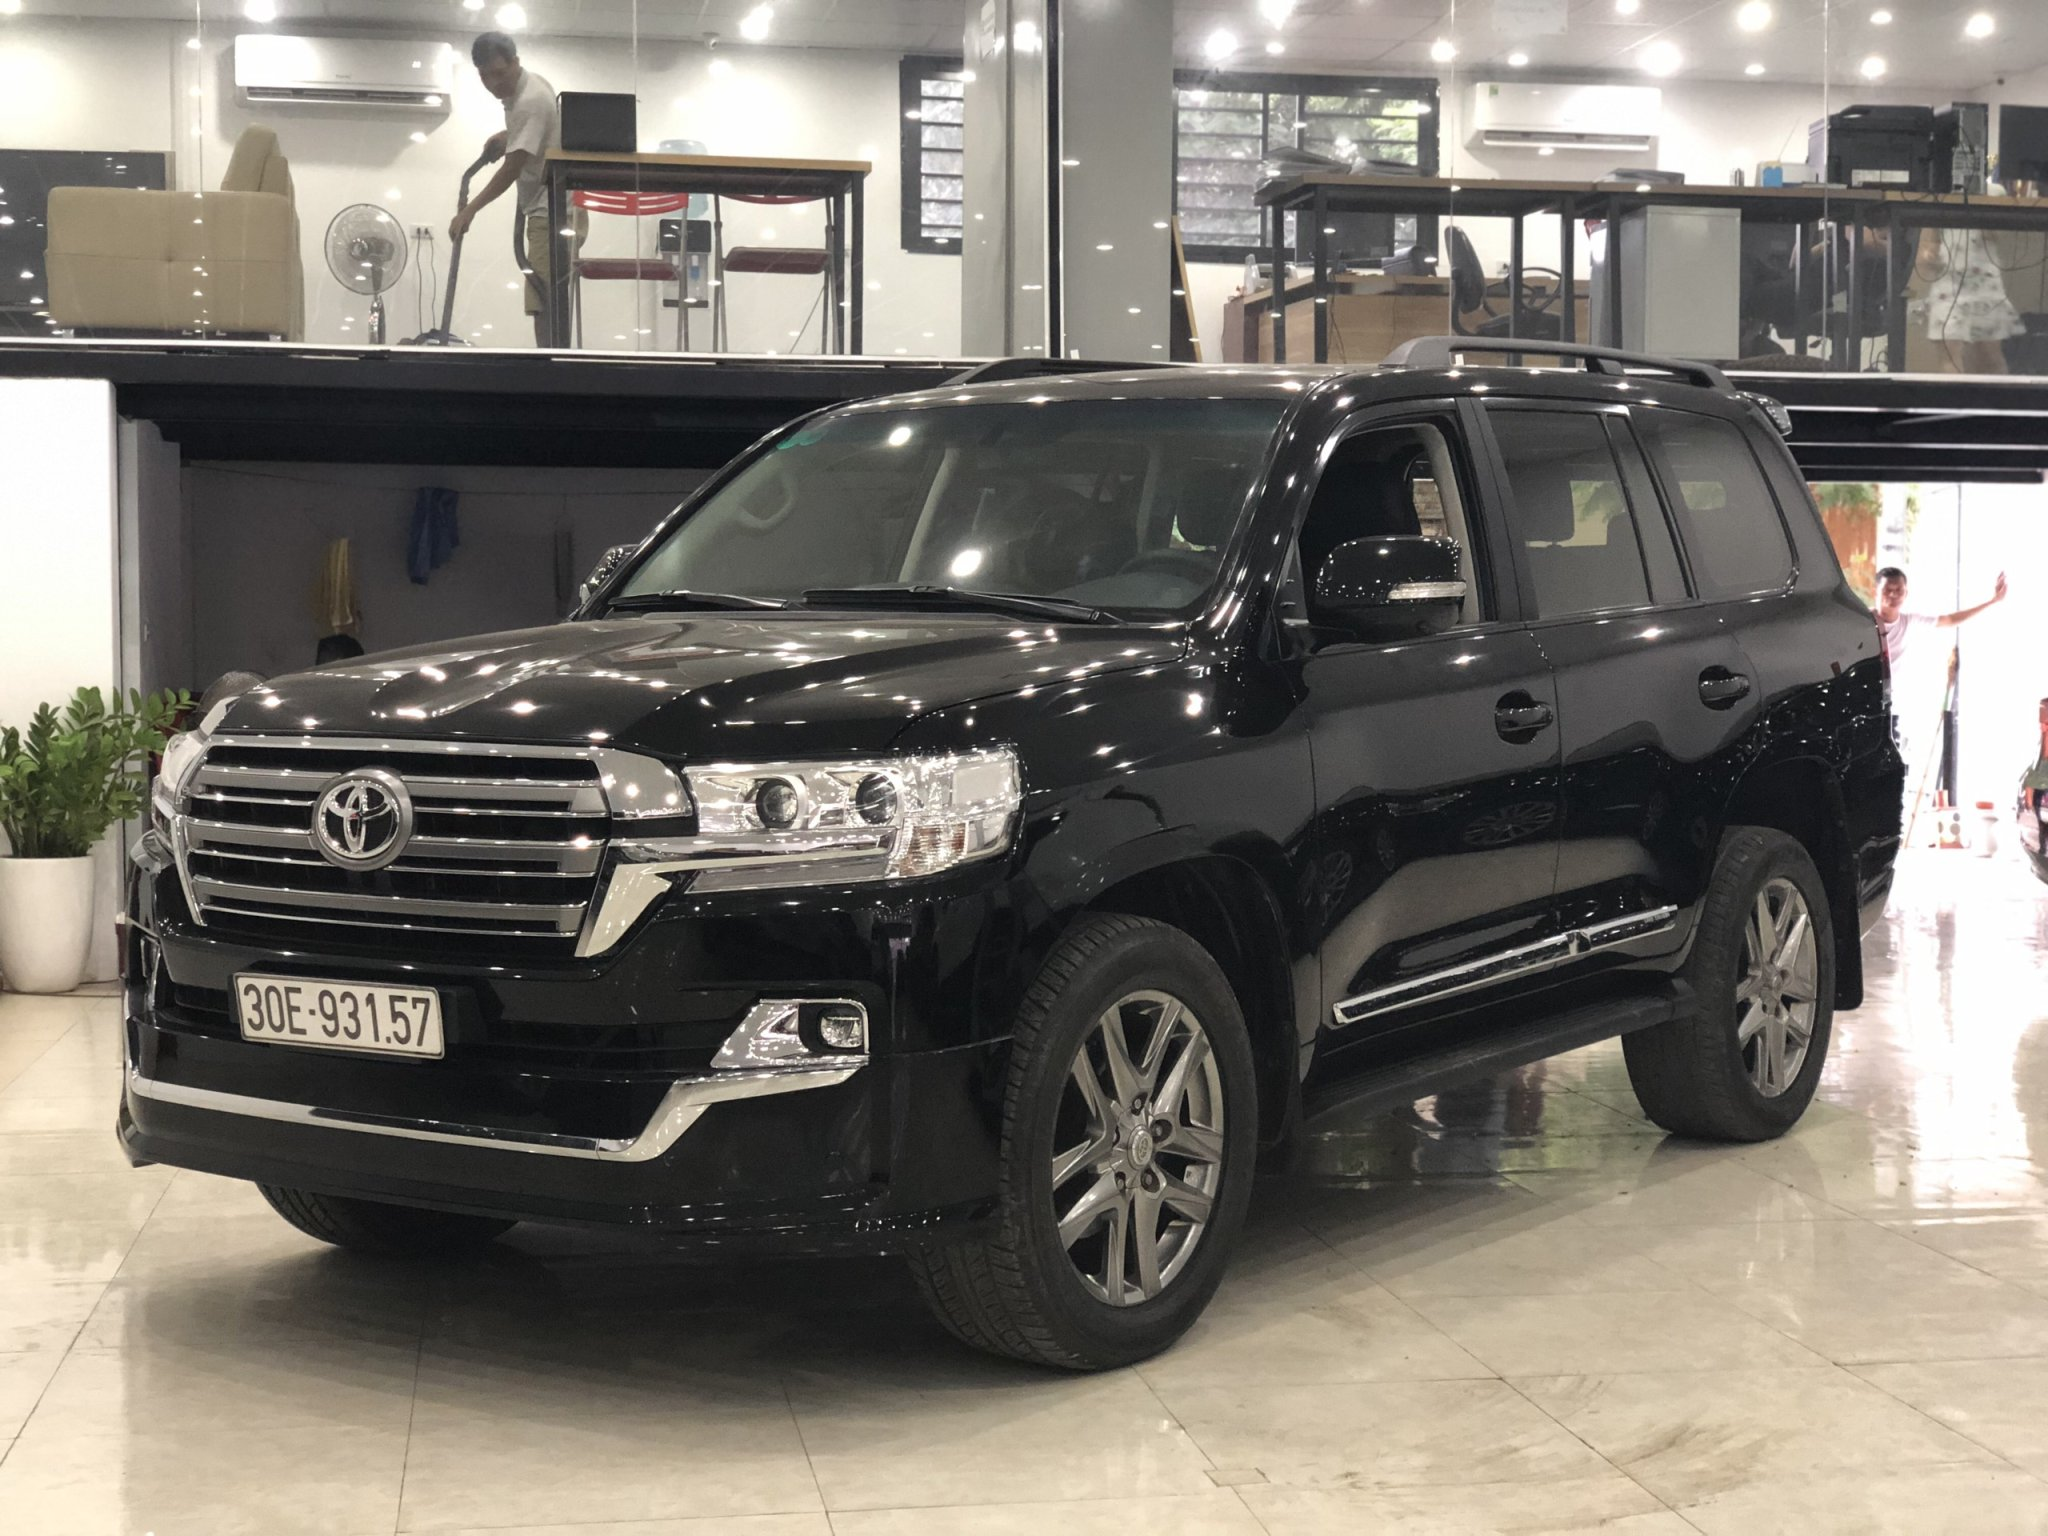 Land Cruiser VX 2013 lên form 2018